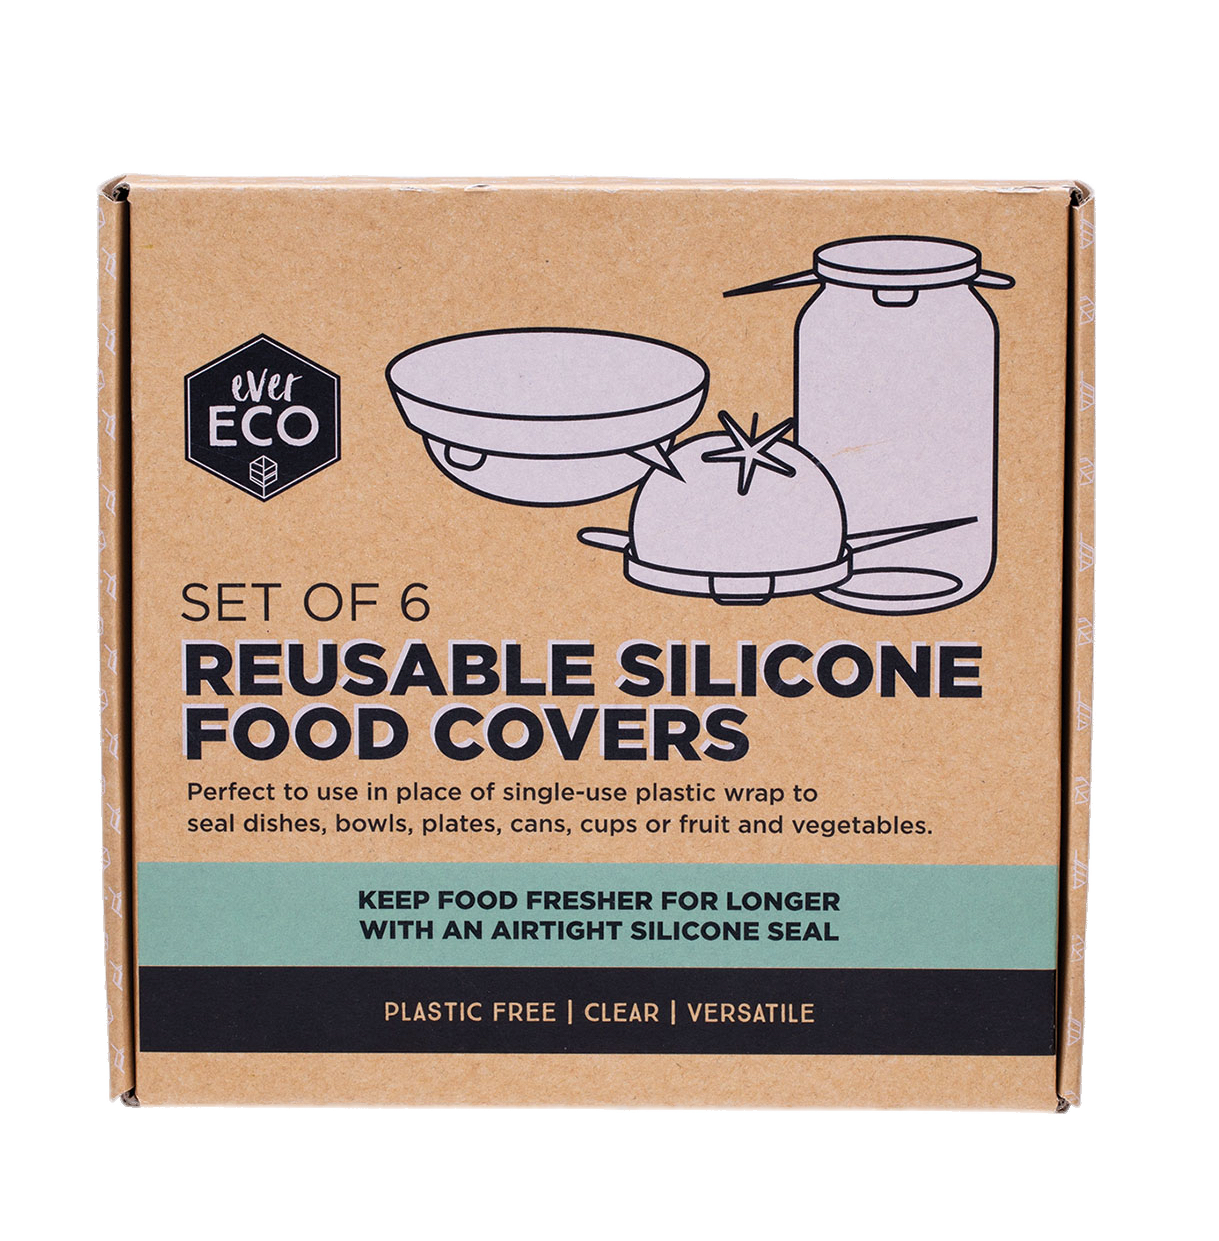 Ever Eco | Ever Eco Silicone Food Covers-Set of 6 | Plastic Free Living | Environmentally Friendly Homewares